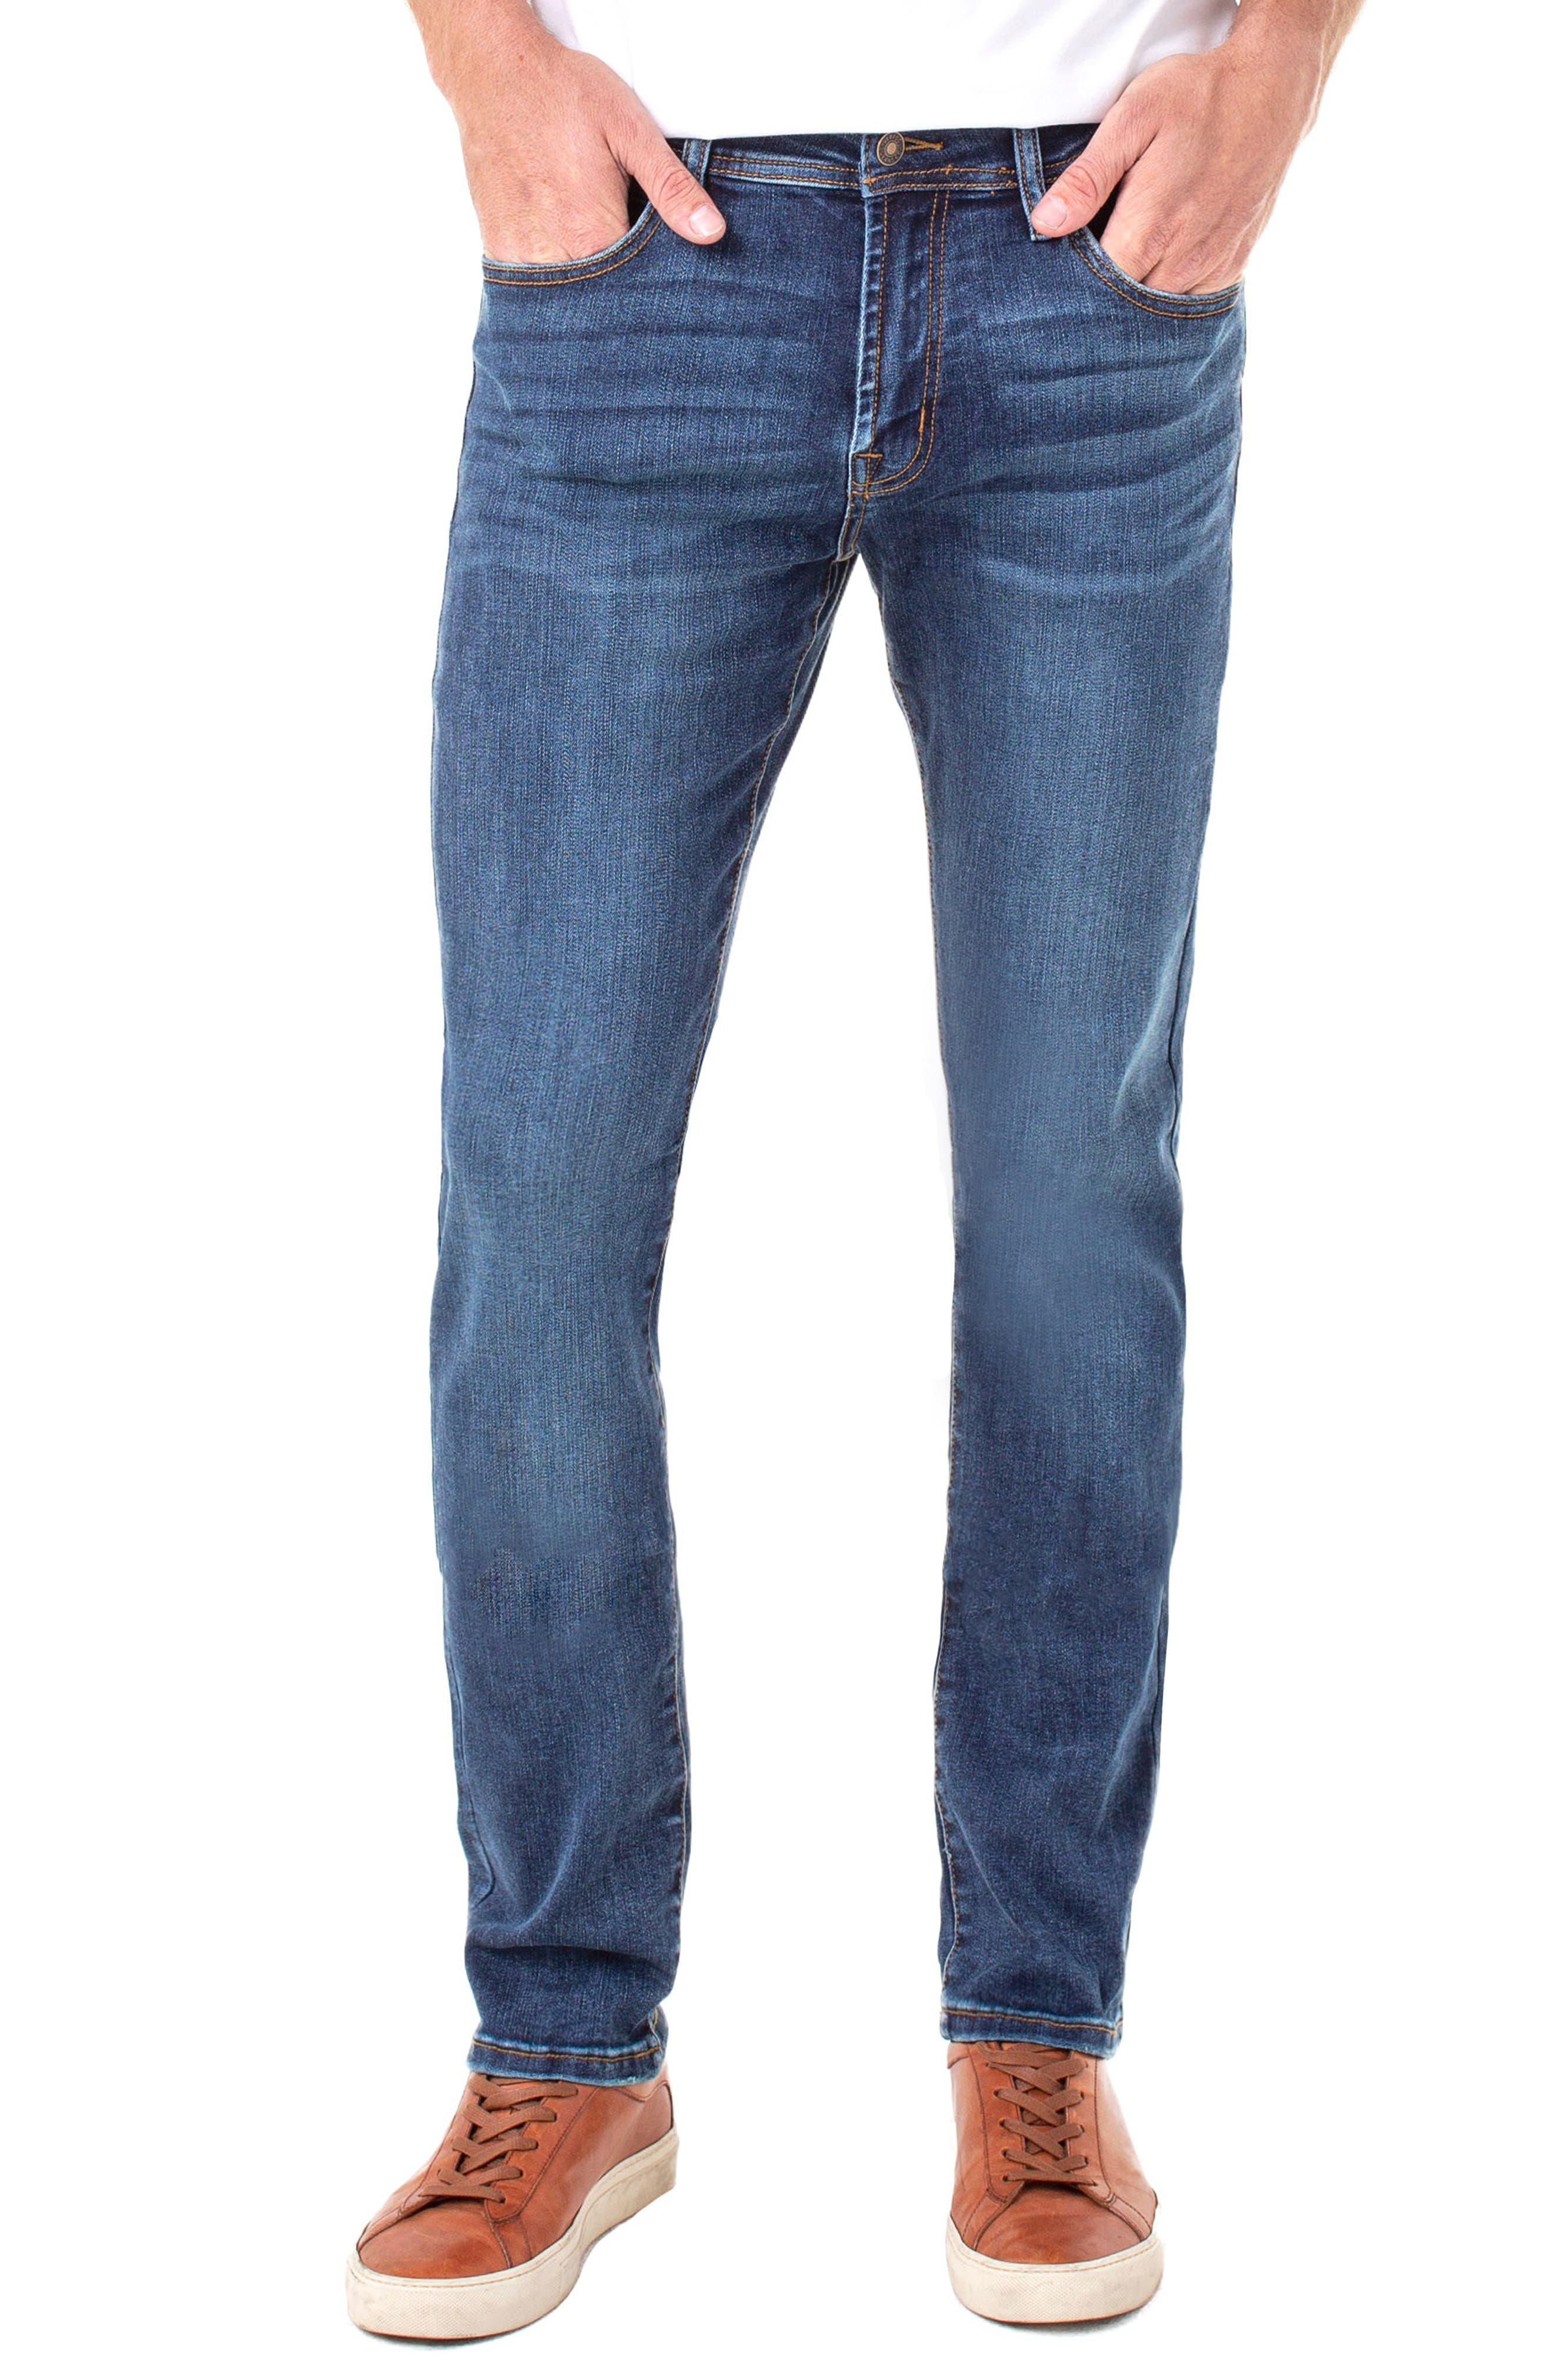 LIVERPOOL, Regent Relaxed Straight Leg Jeans, Main thumbnail 1, color, ADVENT